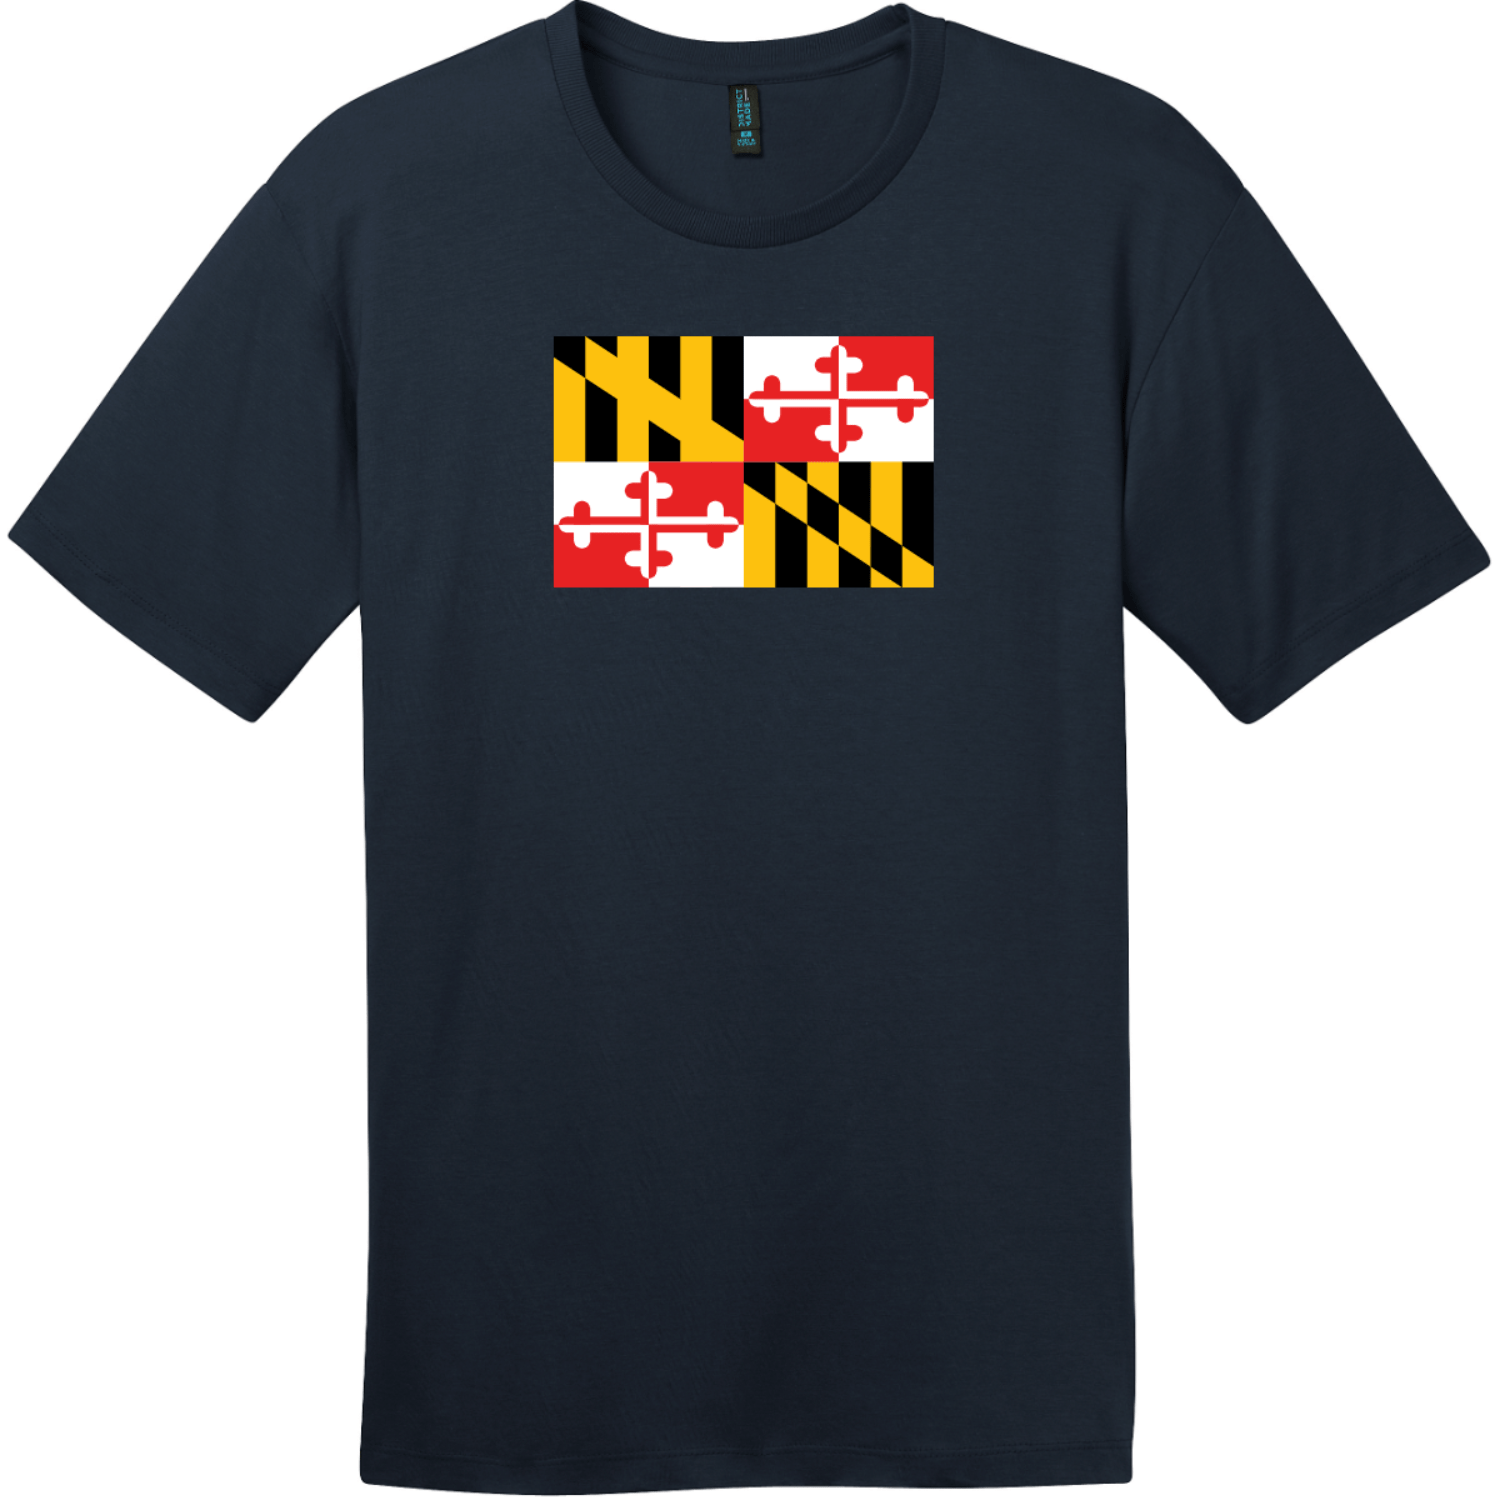 Maryland State Flag T-Shirt New Navy District Perfect Weight Tee DT104